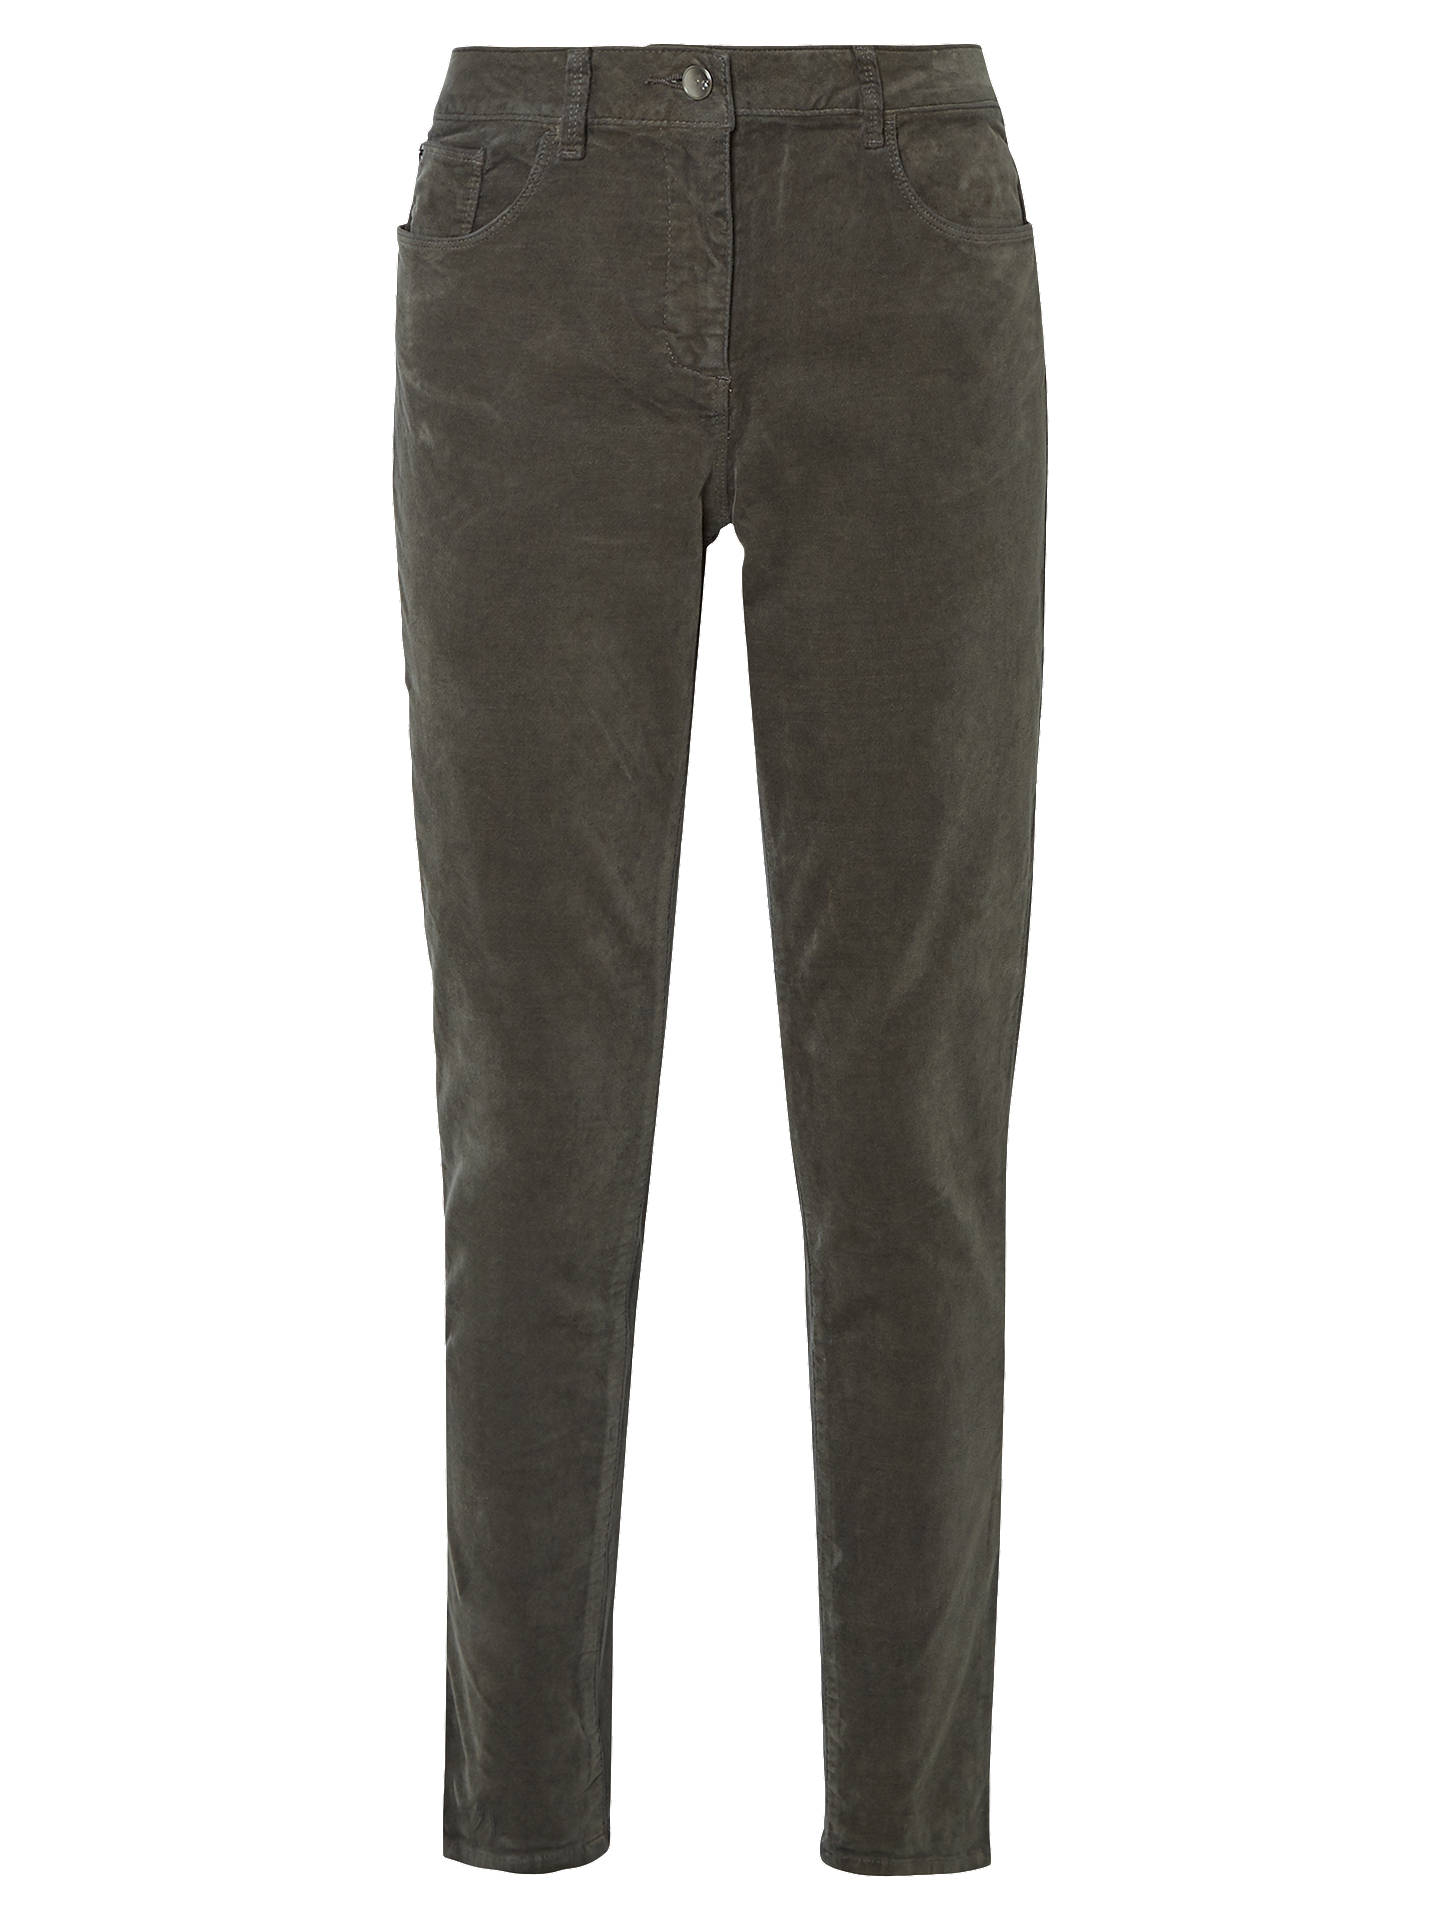 BuyWhite Stuff Willow Velvet Skinny Trousers, Brown, 6 Online at johnlewis.com